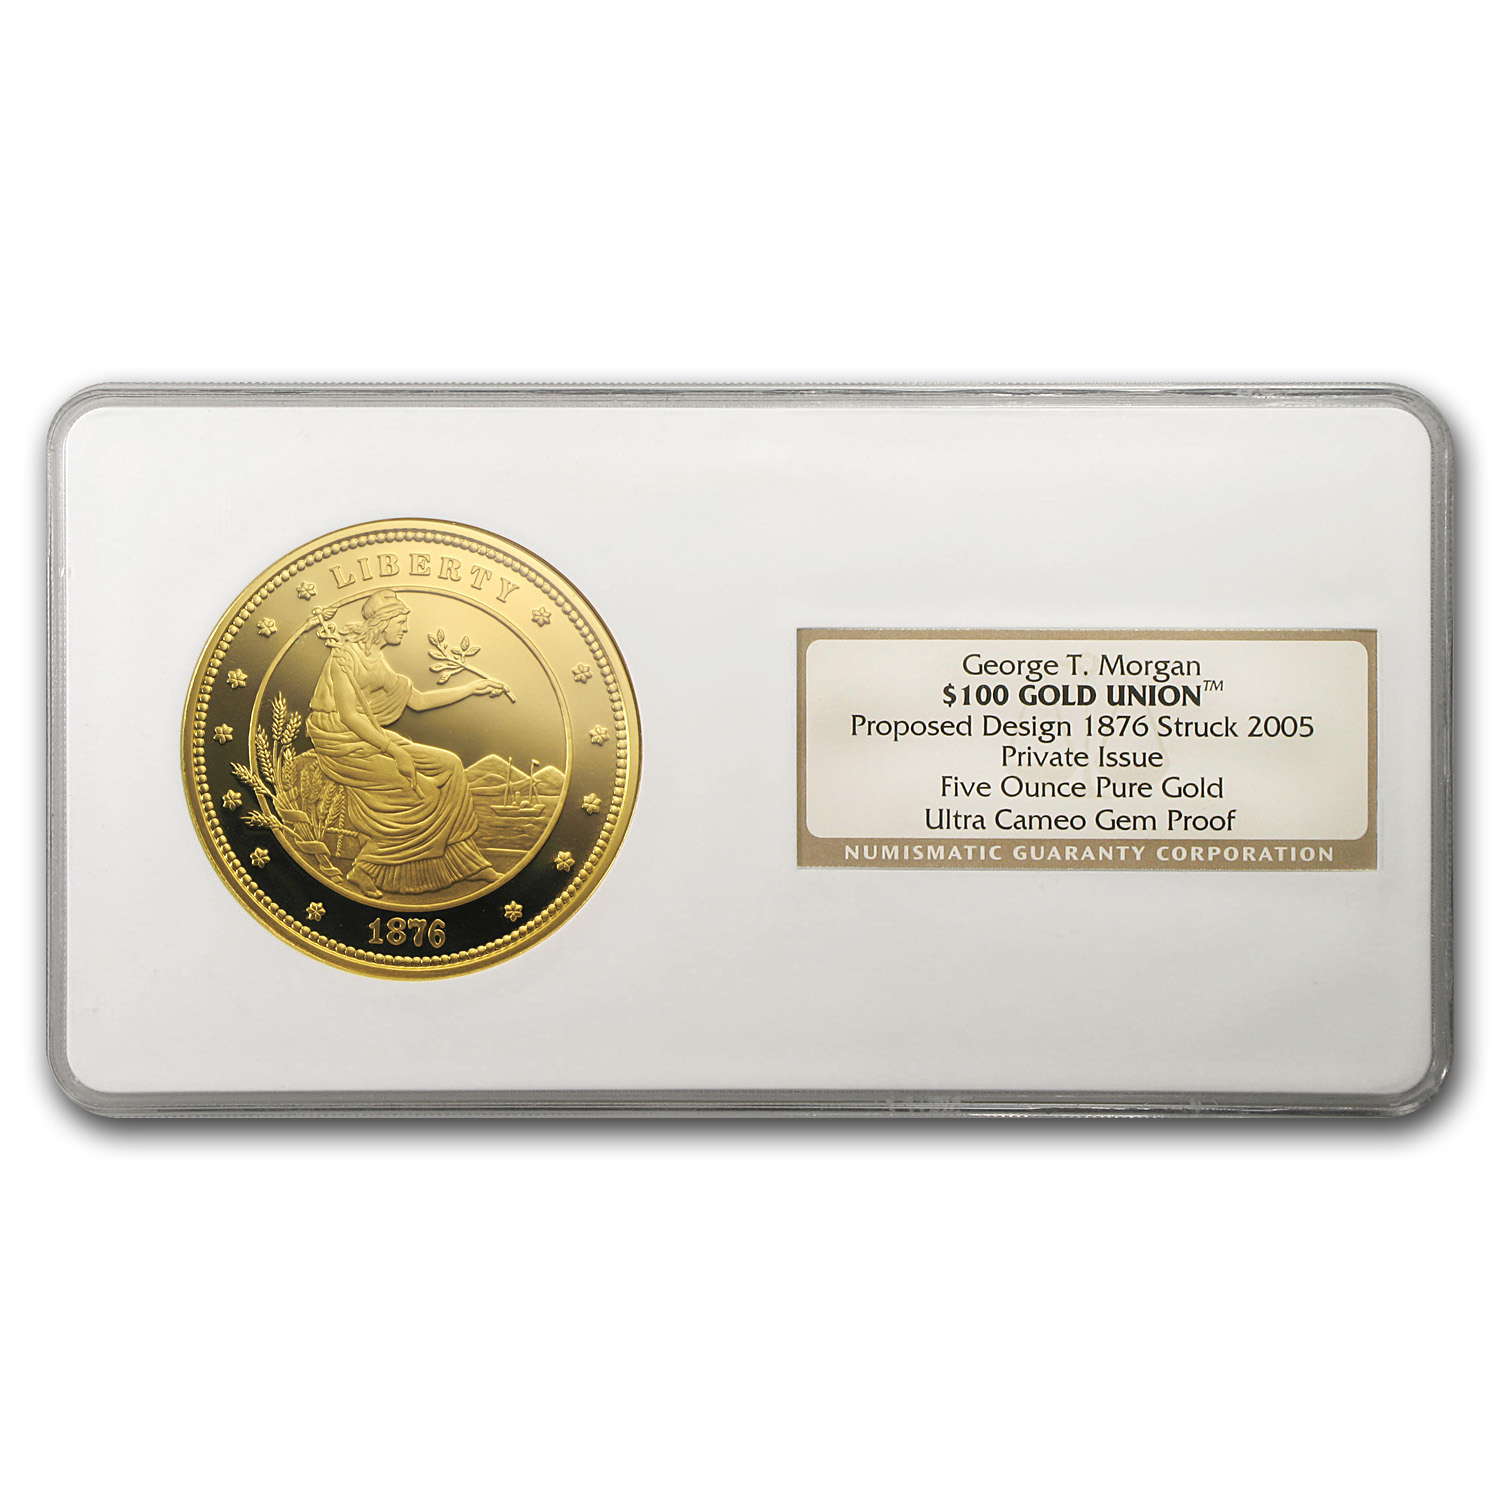 5 oz Gold Round - $100 Gold Union (NGC, Gem Proof)